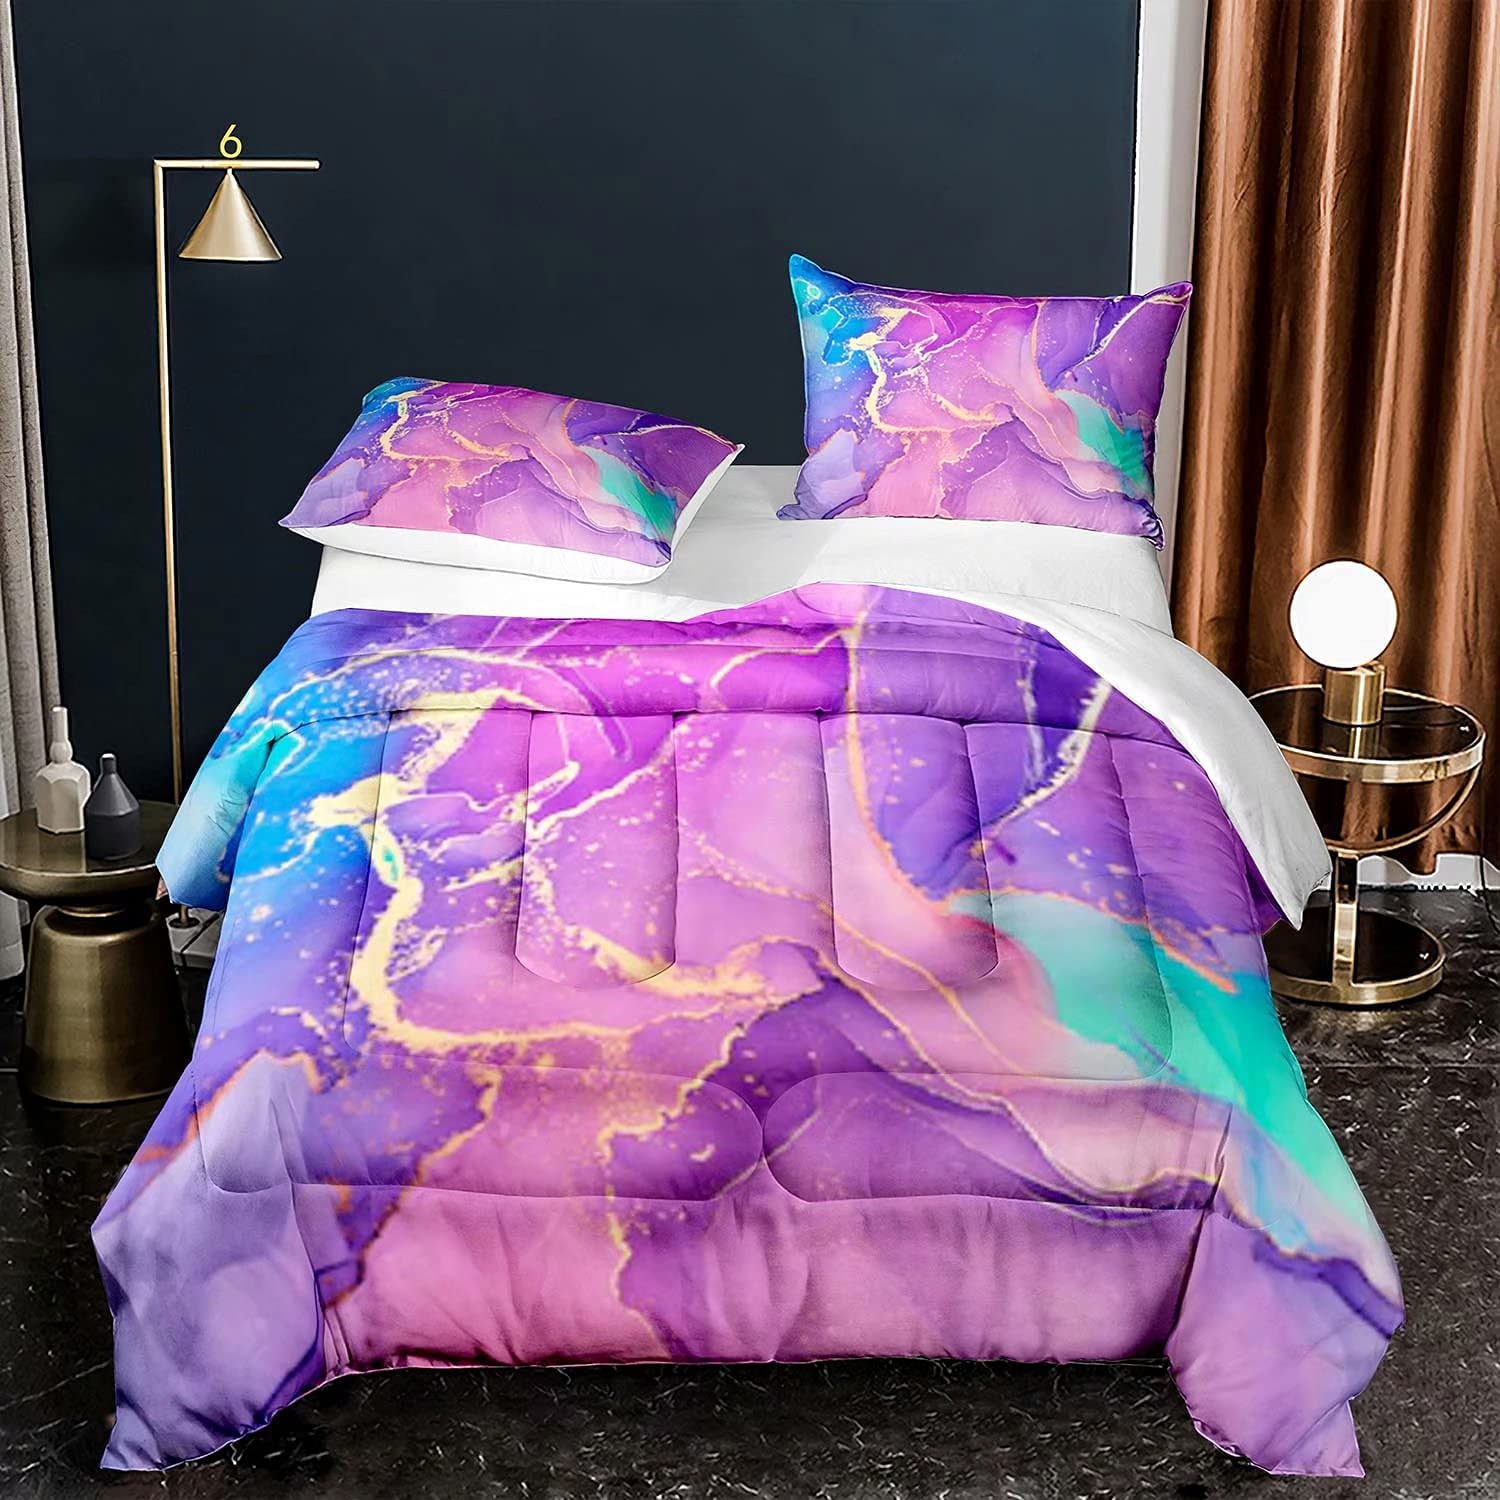 Satauly Marble Ranking TOP19 Comforter National products Sets Elegant Set Bedding Twin Marbling